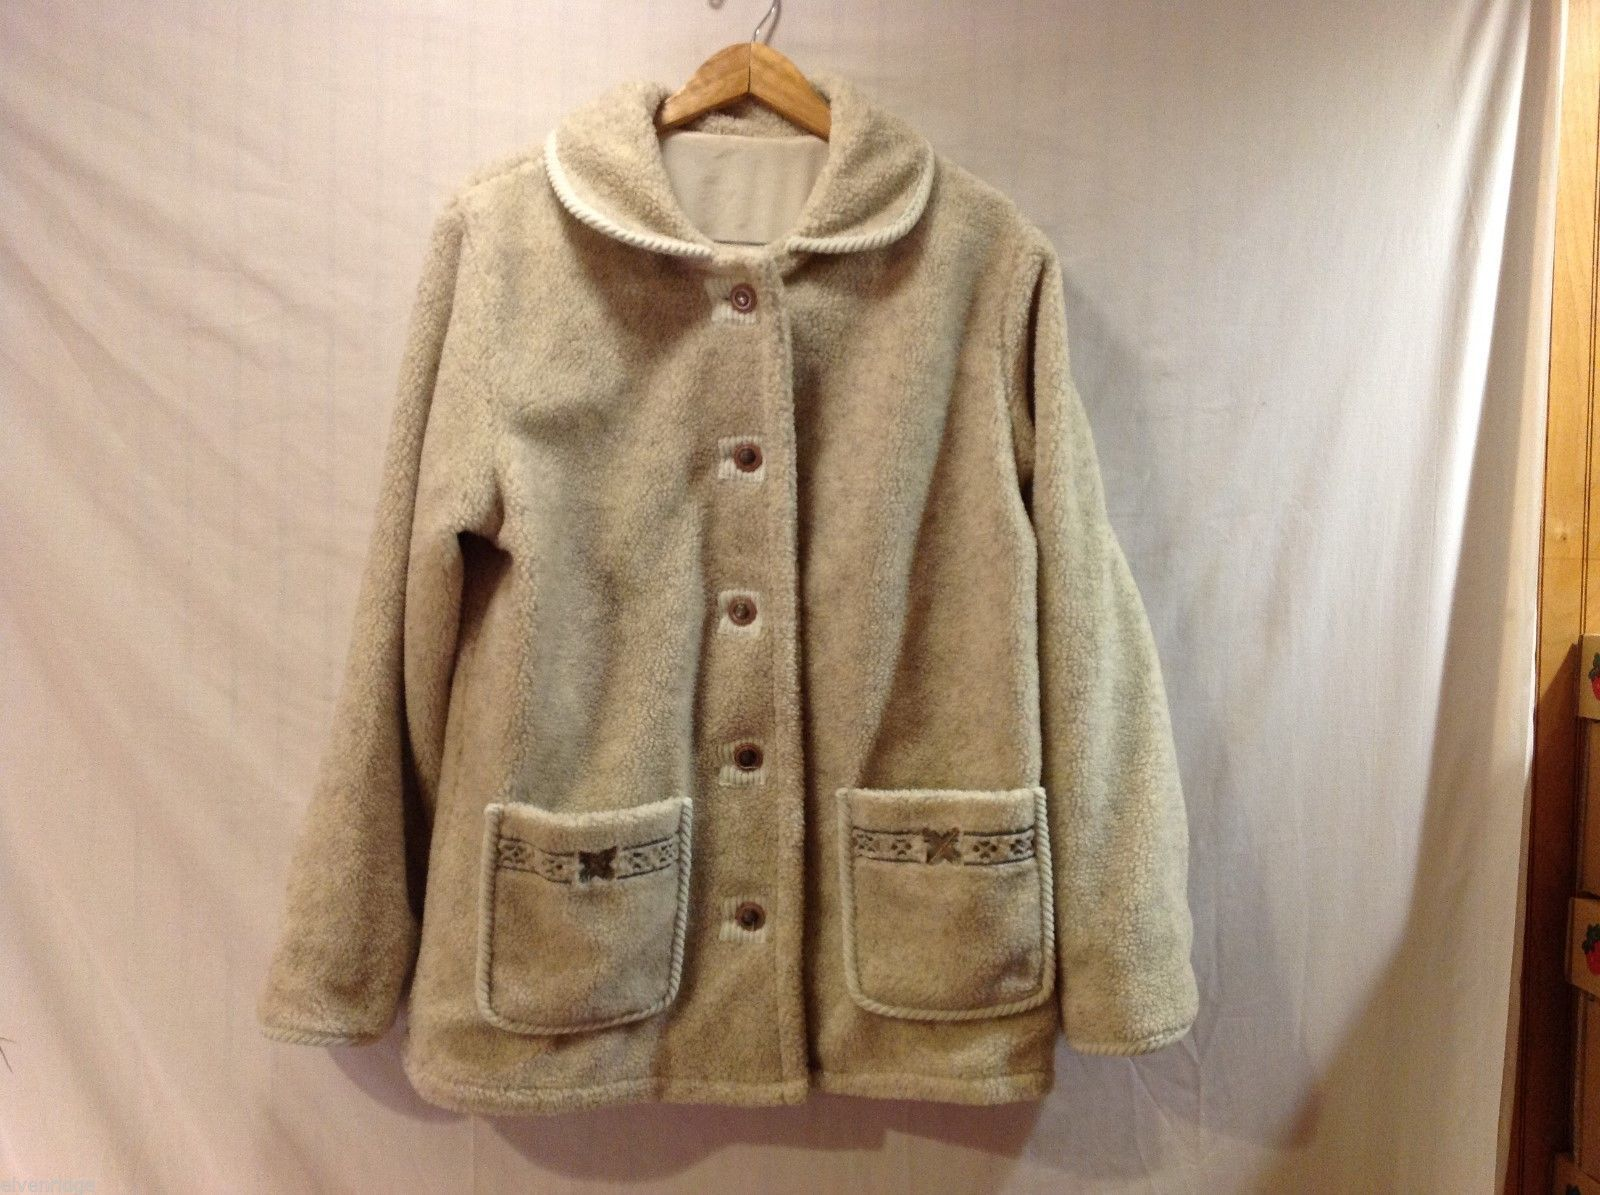 Womens Cream Colored Fleece Coat, see measurements for size